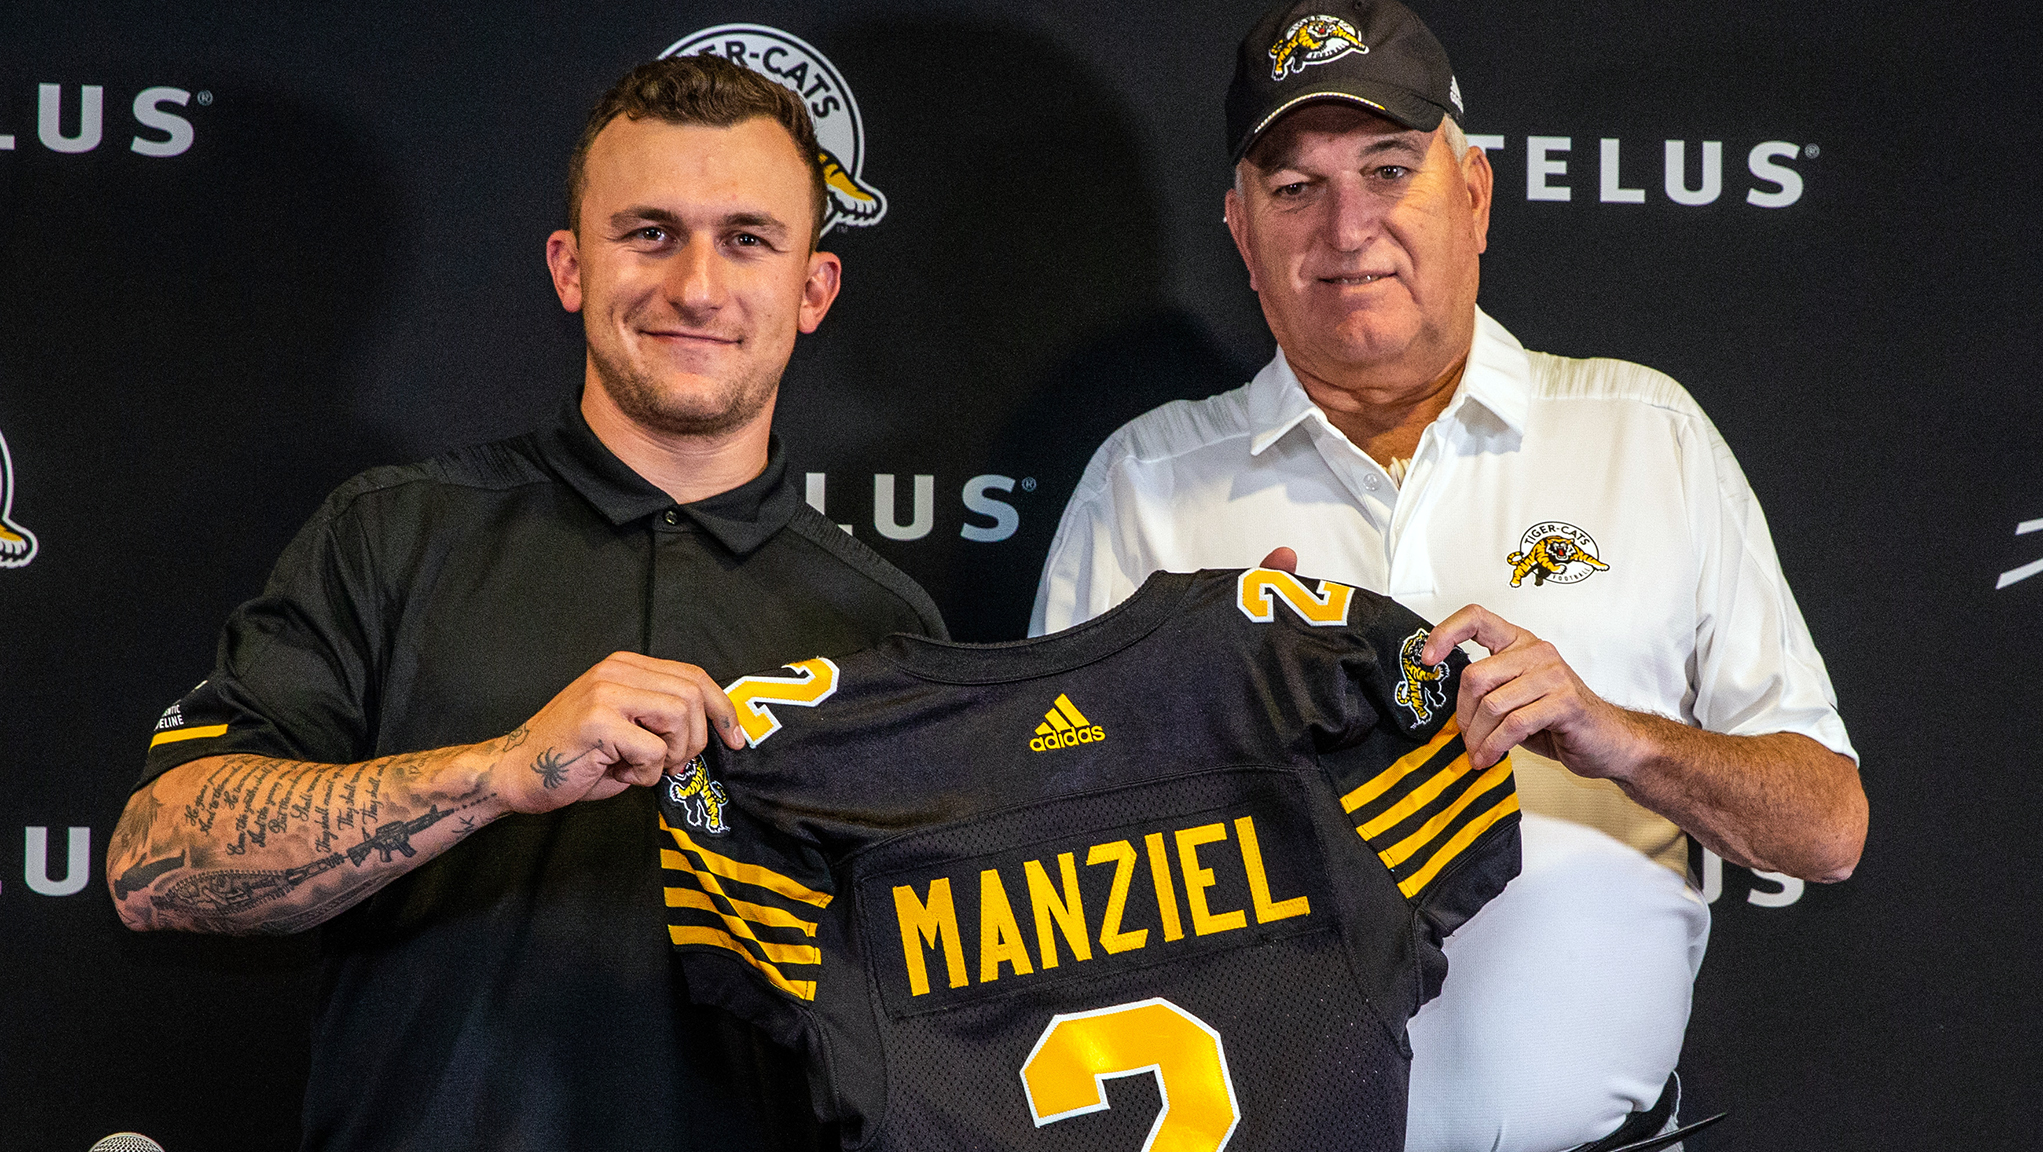 Ticats confirm Manziel signing  Johnny touches down in Hamilton - CFL.ca 0273504a2